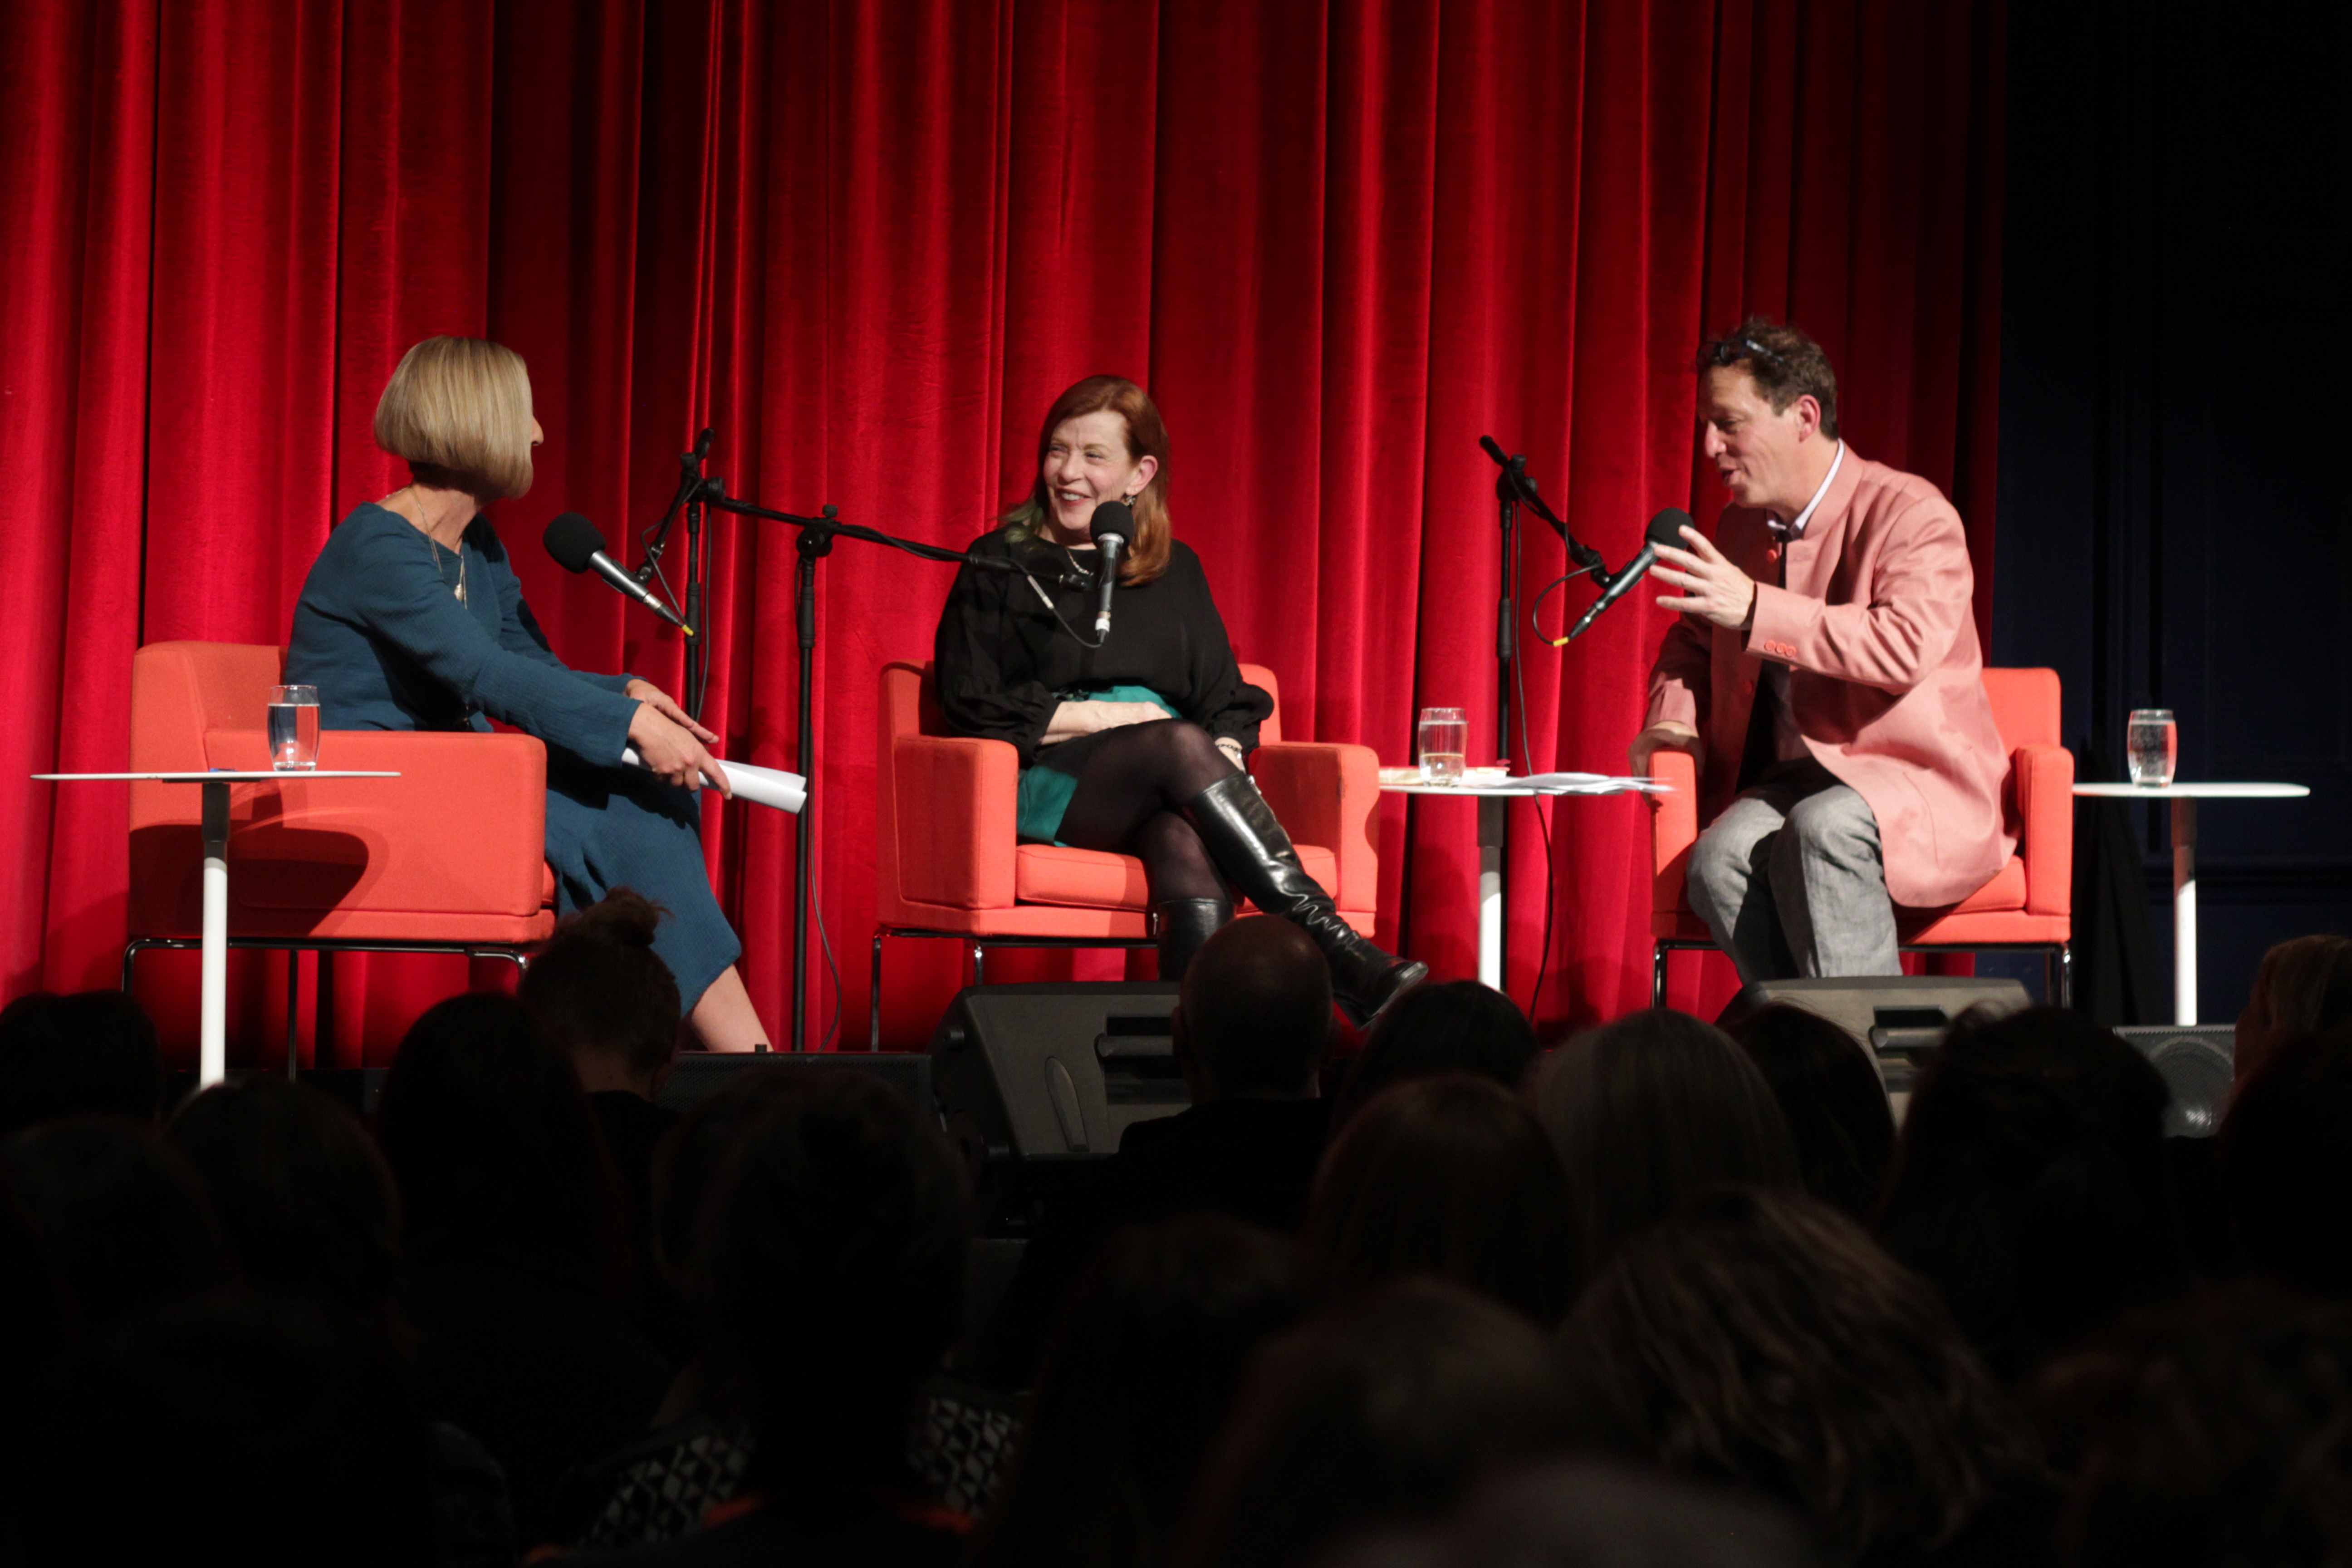 Photograph of Kate Torney, Susan Orlean and Paul Holdengräber